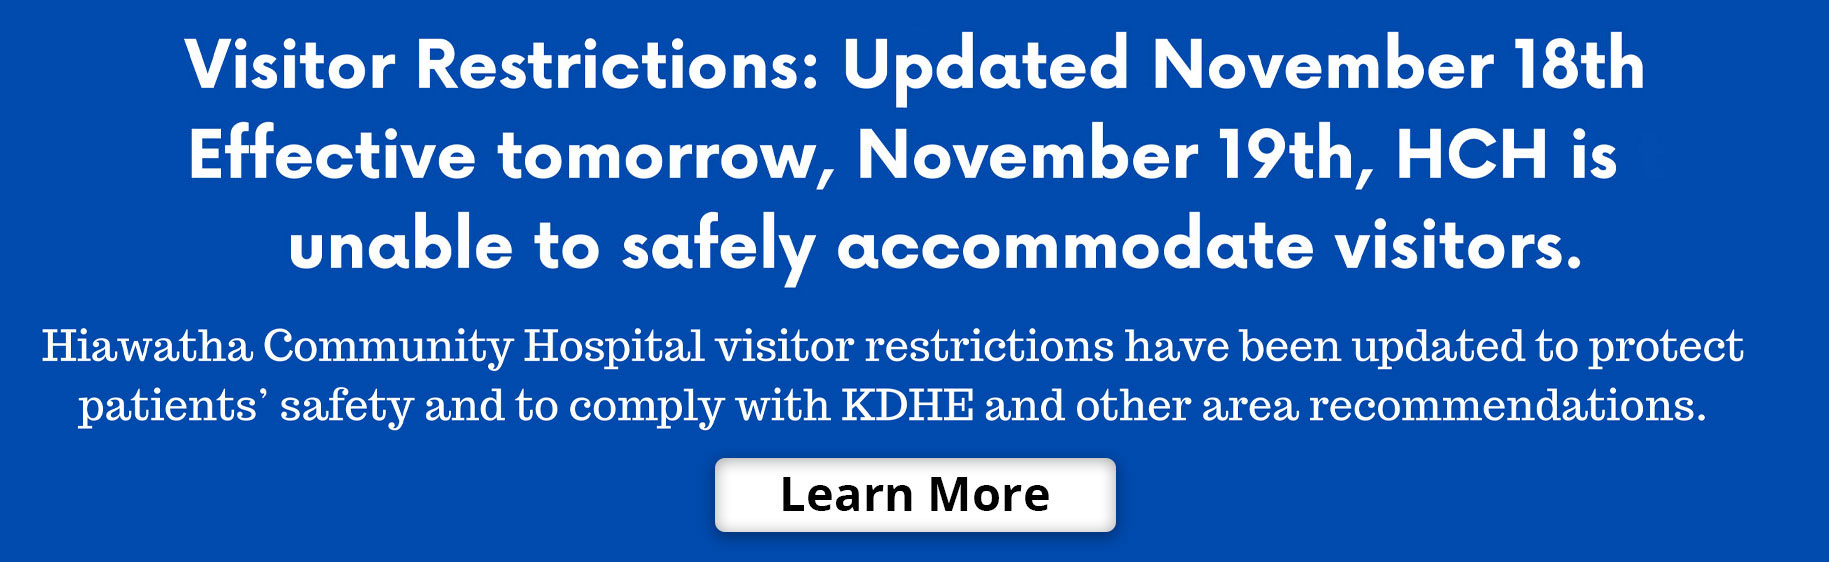 Visitor Restrictions: Updated November 18th Effective tomorrow, November 19th HCH is unable to safely accommodate Visitors. Hiawatha community Hospital visitor restrictions have been updated to protect patients' safety and to comply with KDHE and other area recommendations.